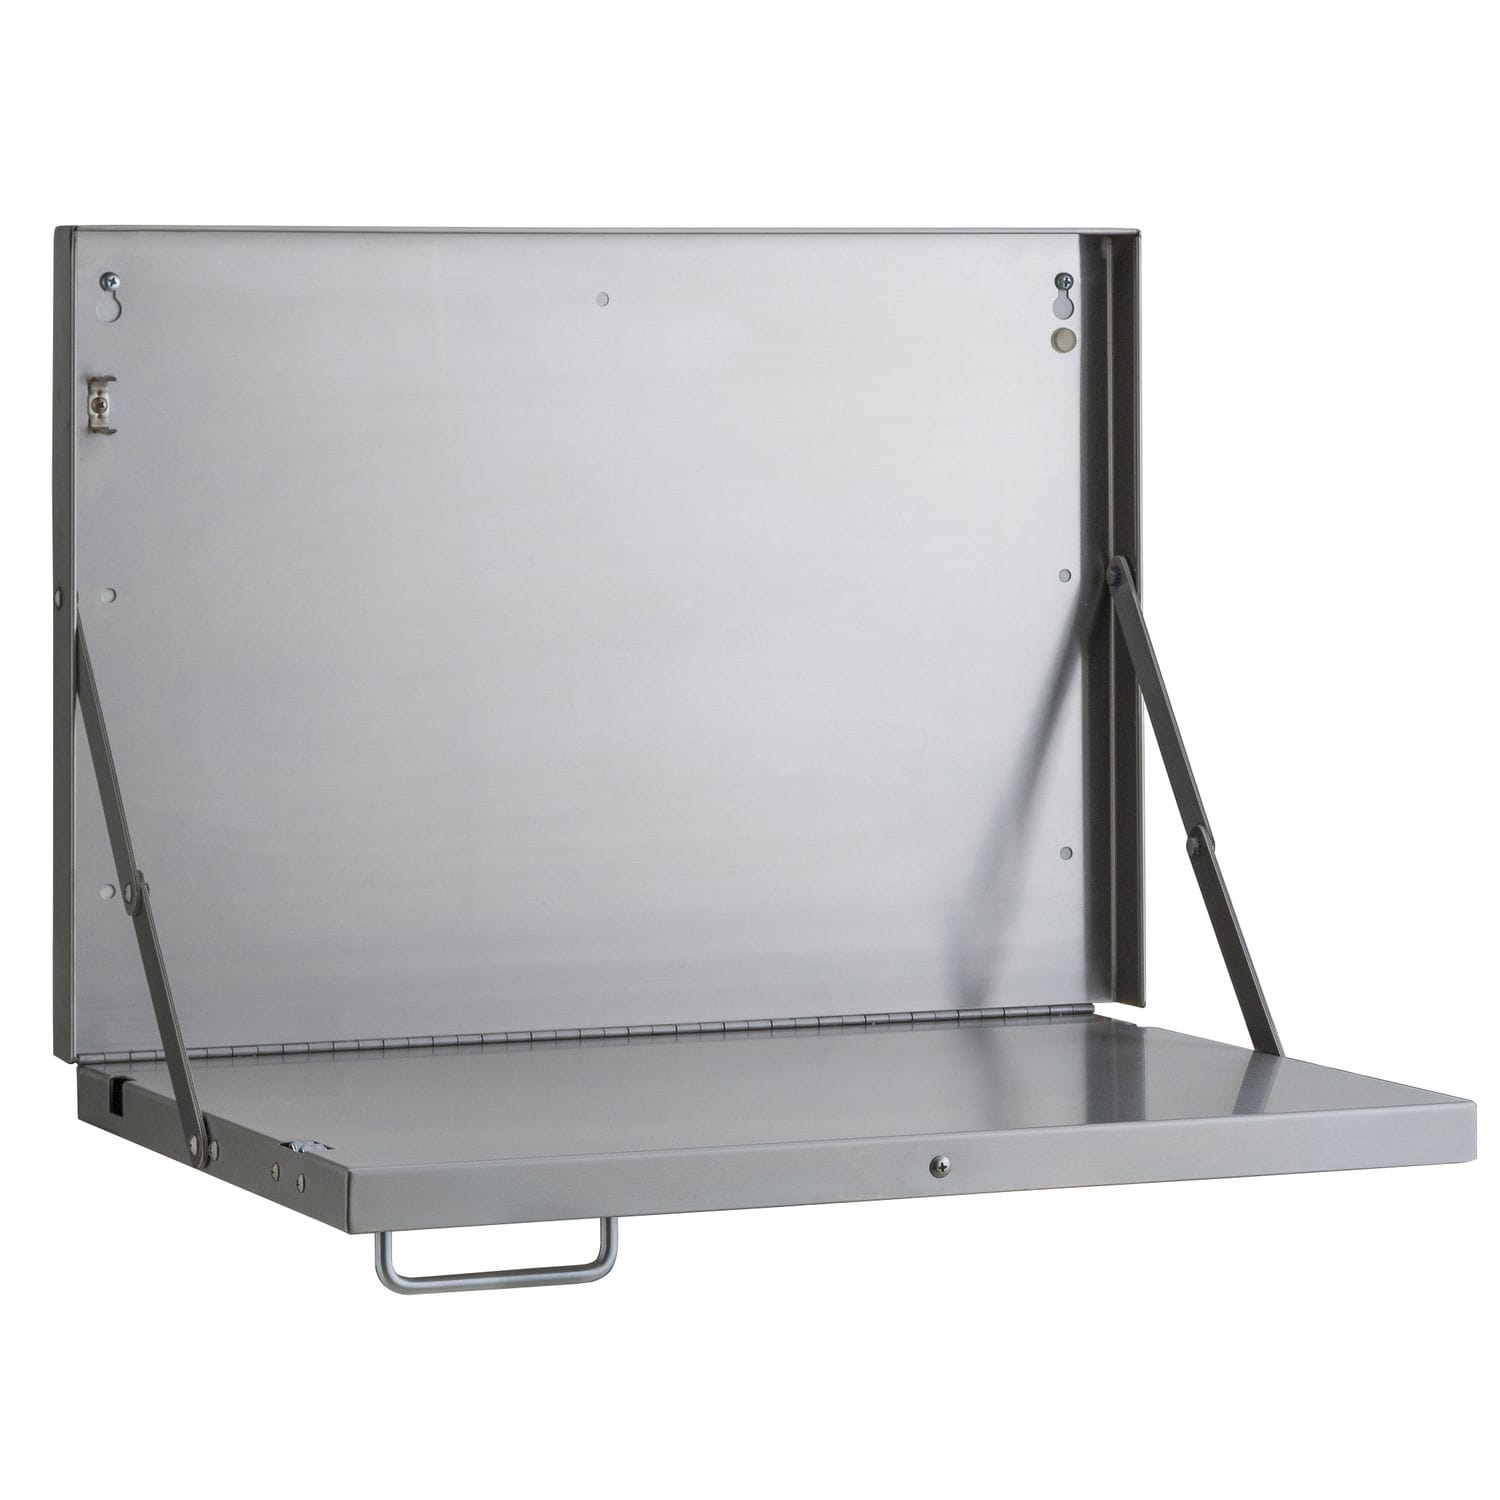 Folding Shelf Wall Mounted Industrial Design Stainless Steel